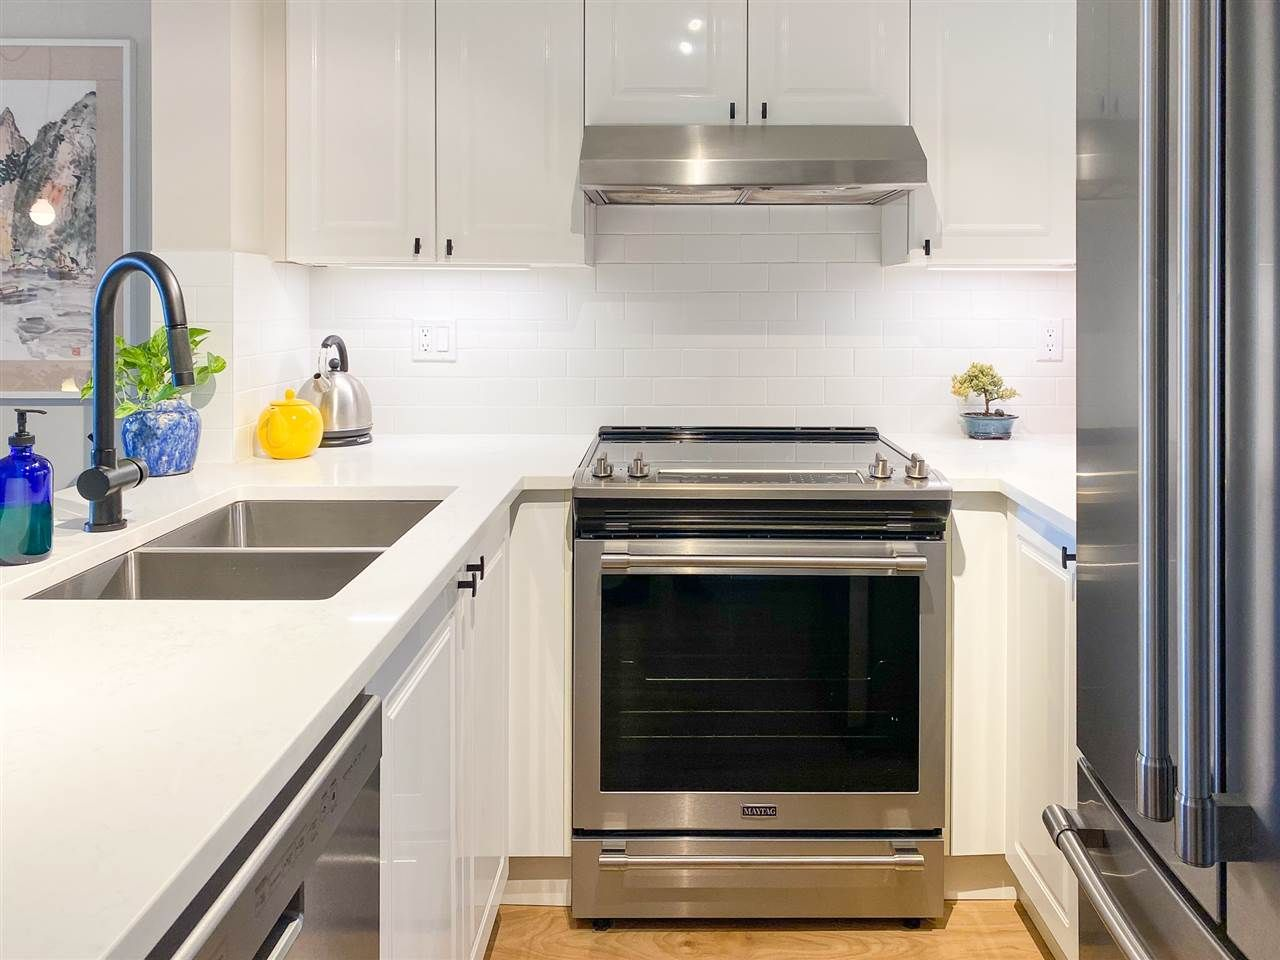 Main Photo: PH9 868 KINGSWAY in Vancouver: Fraser VE Condo for sale (Vancouver East)  : MLS®# R2440498